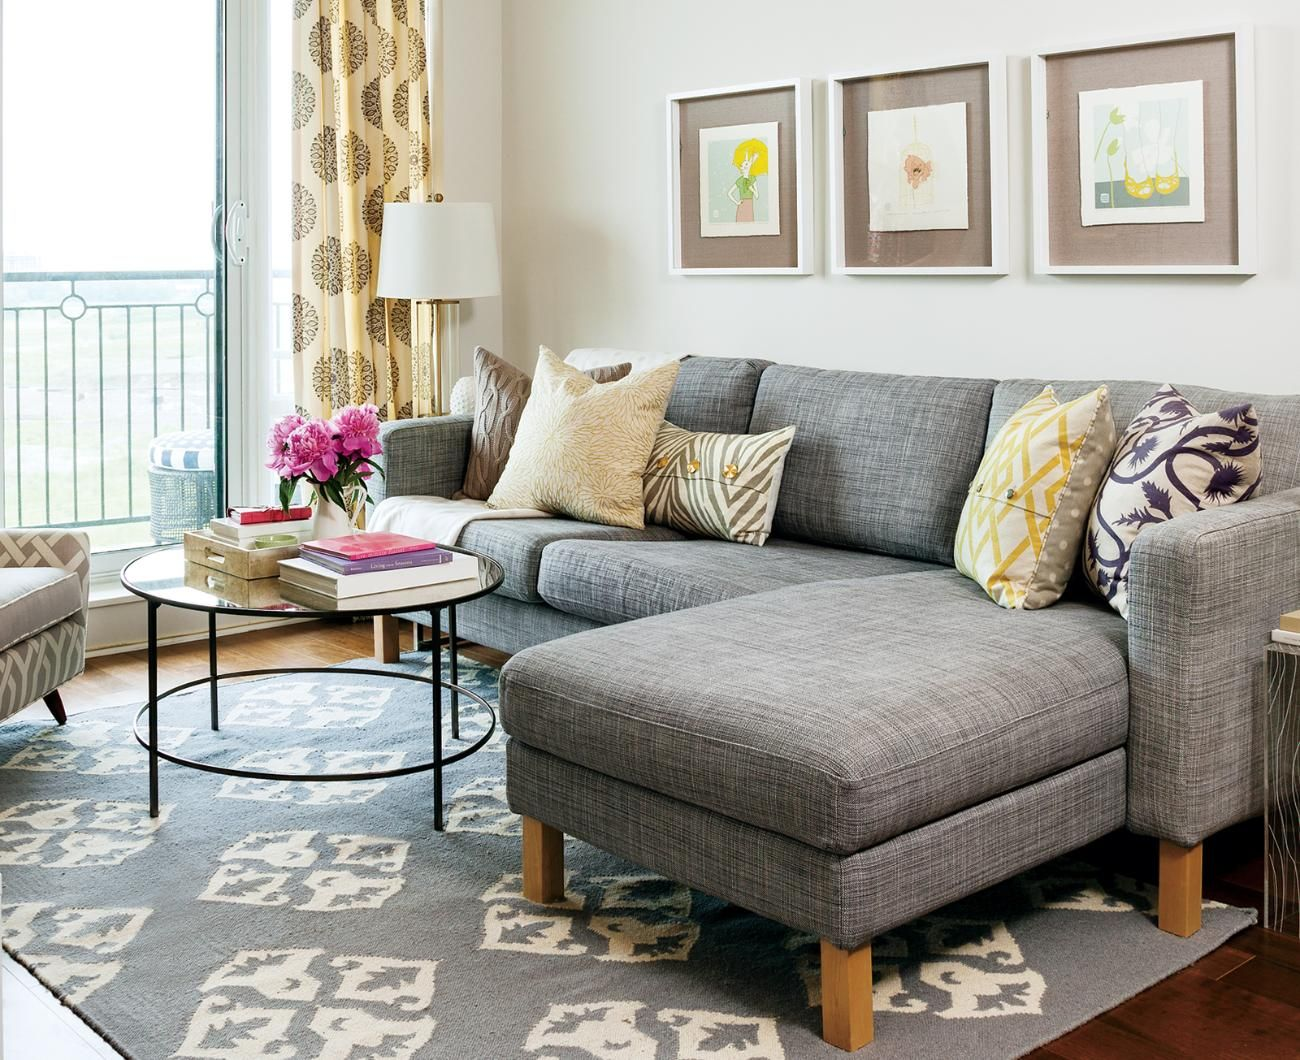 Gold And Grey Living Roomu2014Gold And Grey Combine Beautifully In The Airy Living  Room. Living Room Decor Small ApartmentSmall ...